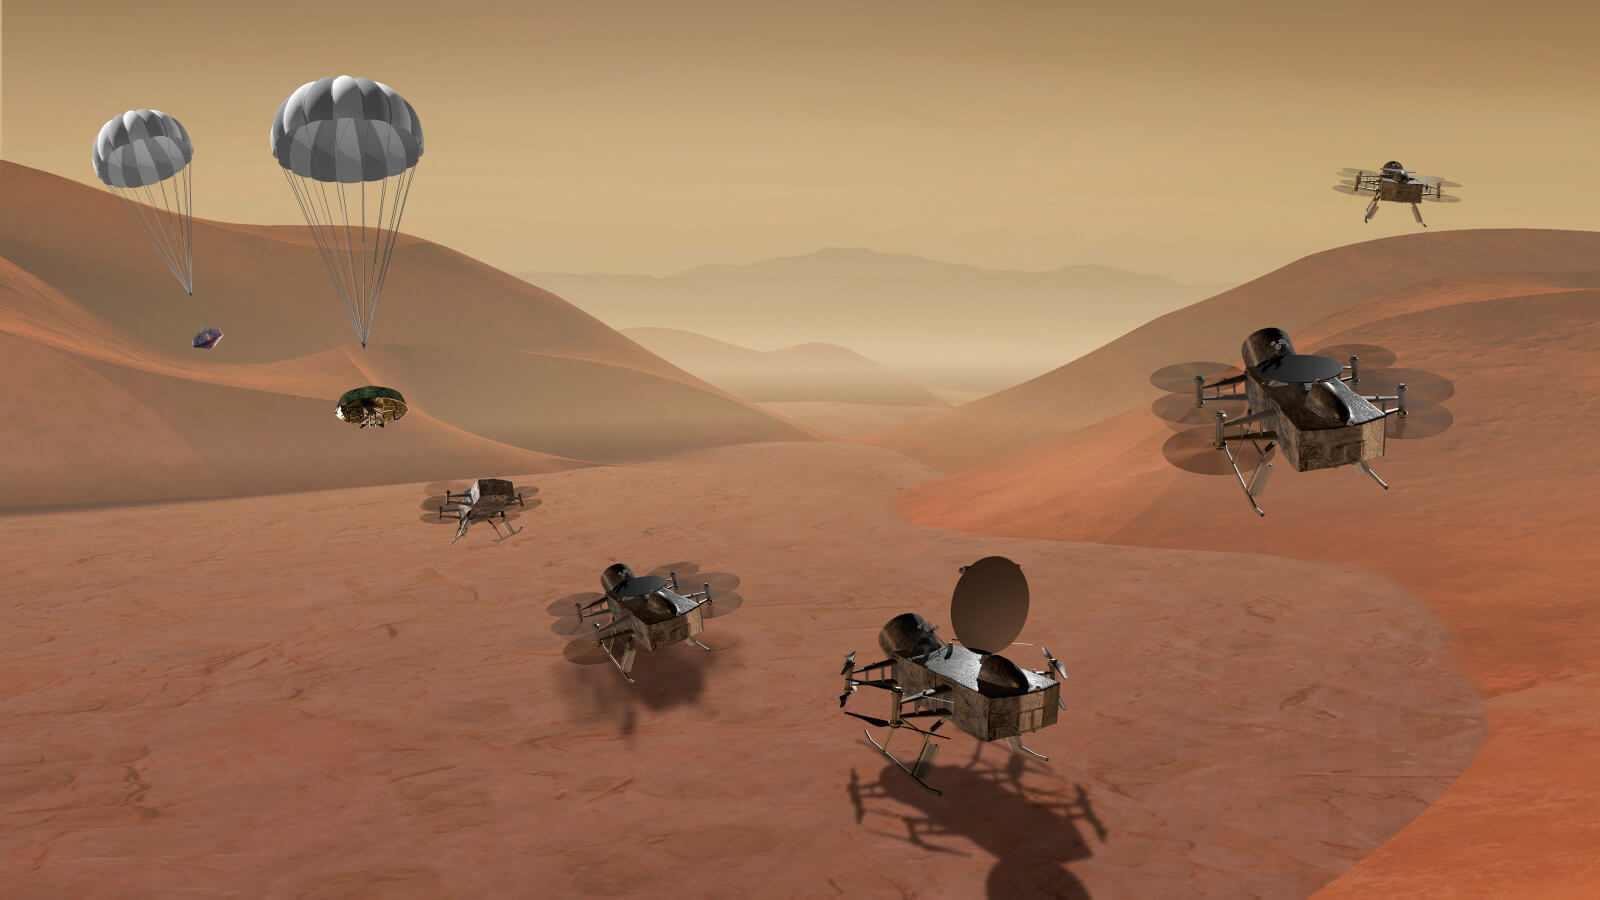 NASAs Dragonfly to explore Saturns moon for origins, signs of life